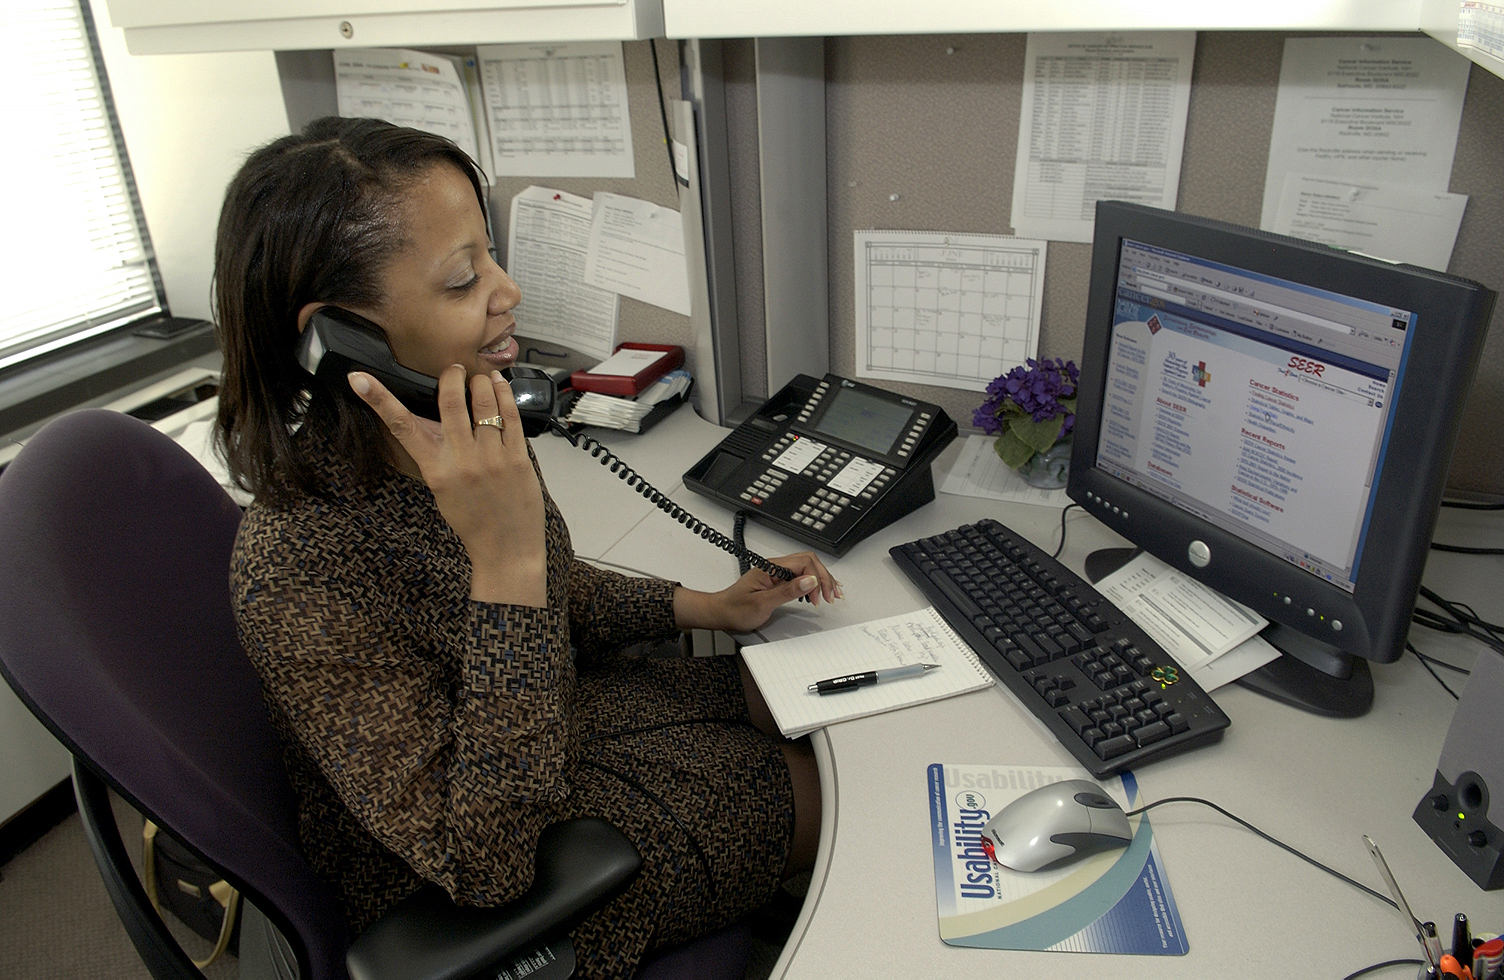 Secretary Answering Phone | Free Images at Clker.com - vector clip art ...